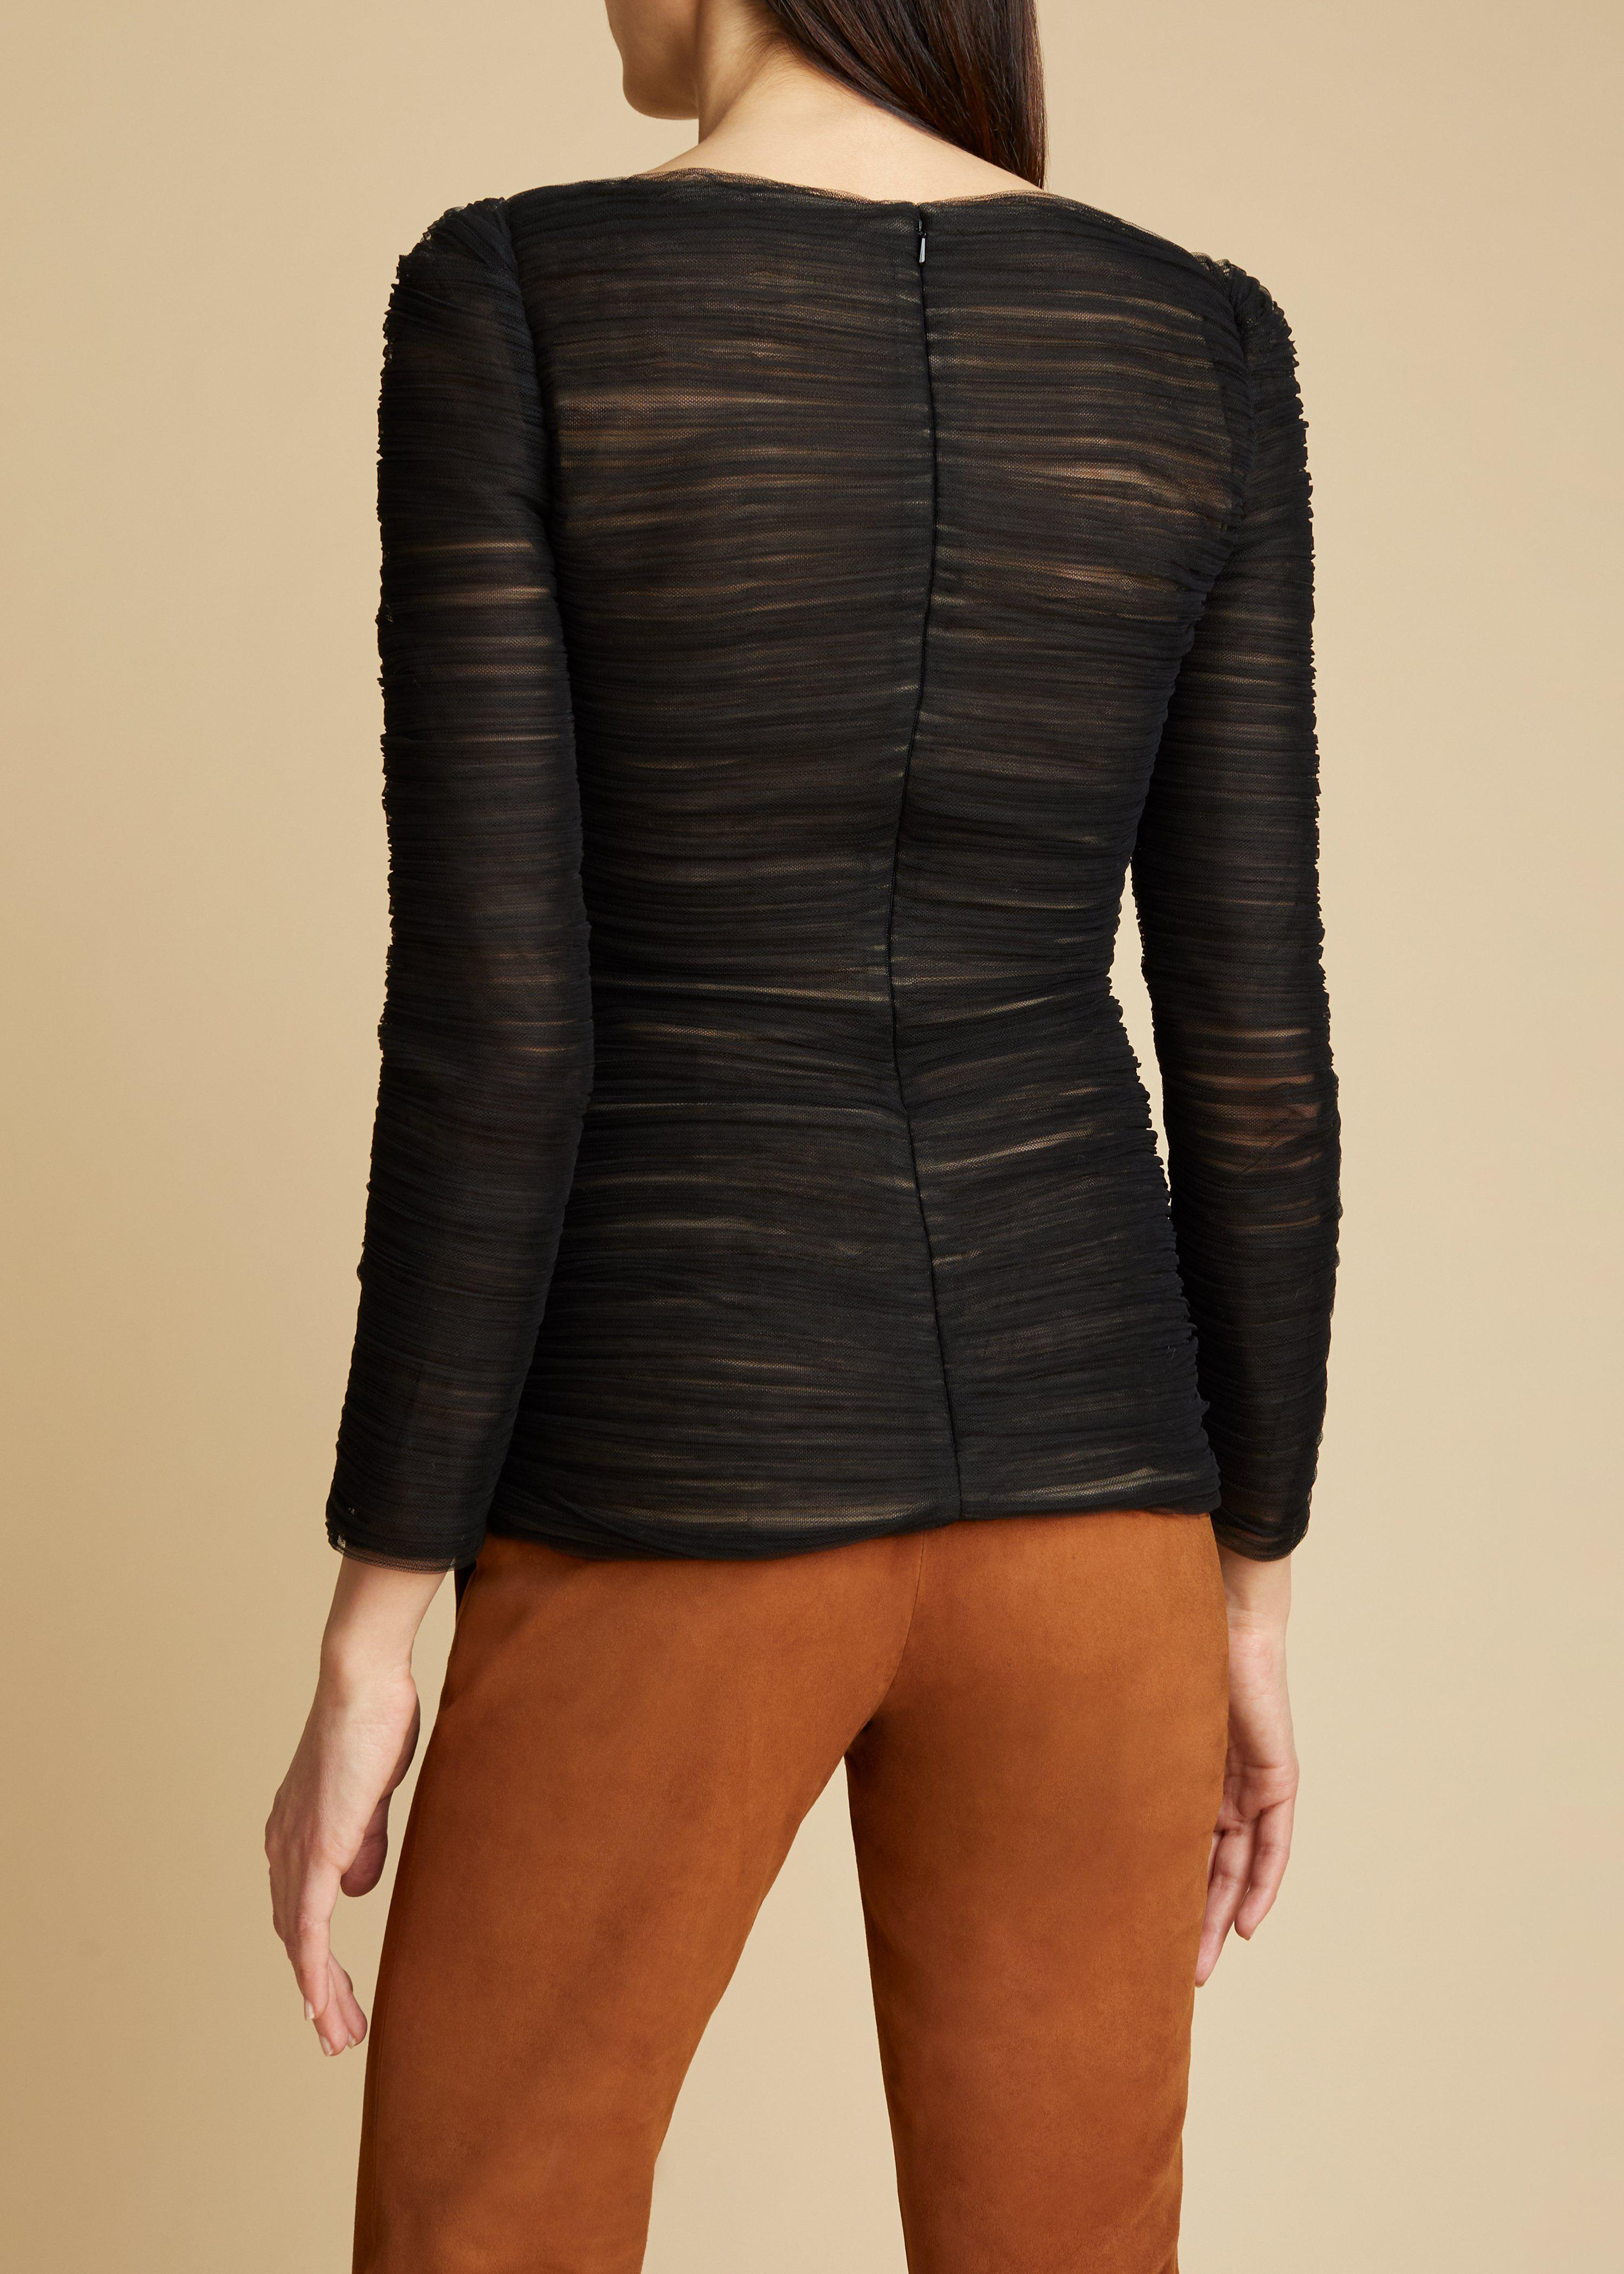 The Vienna Top in Black 2